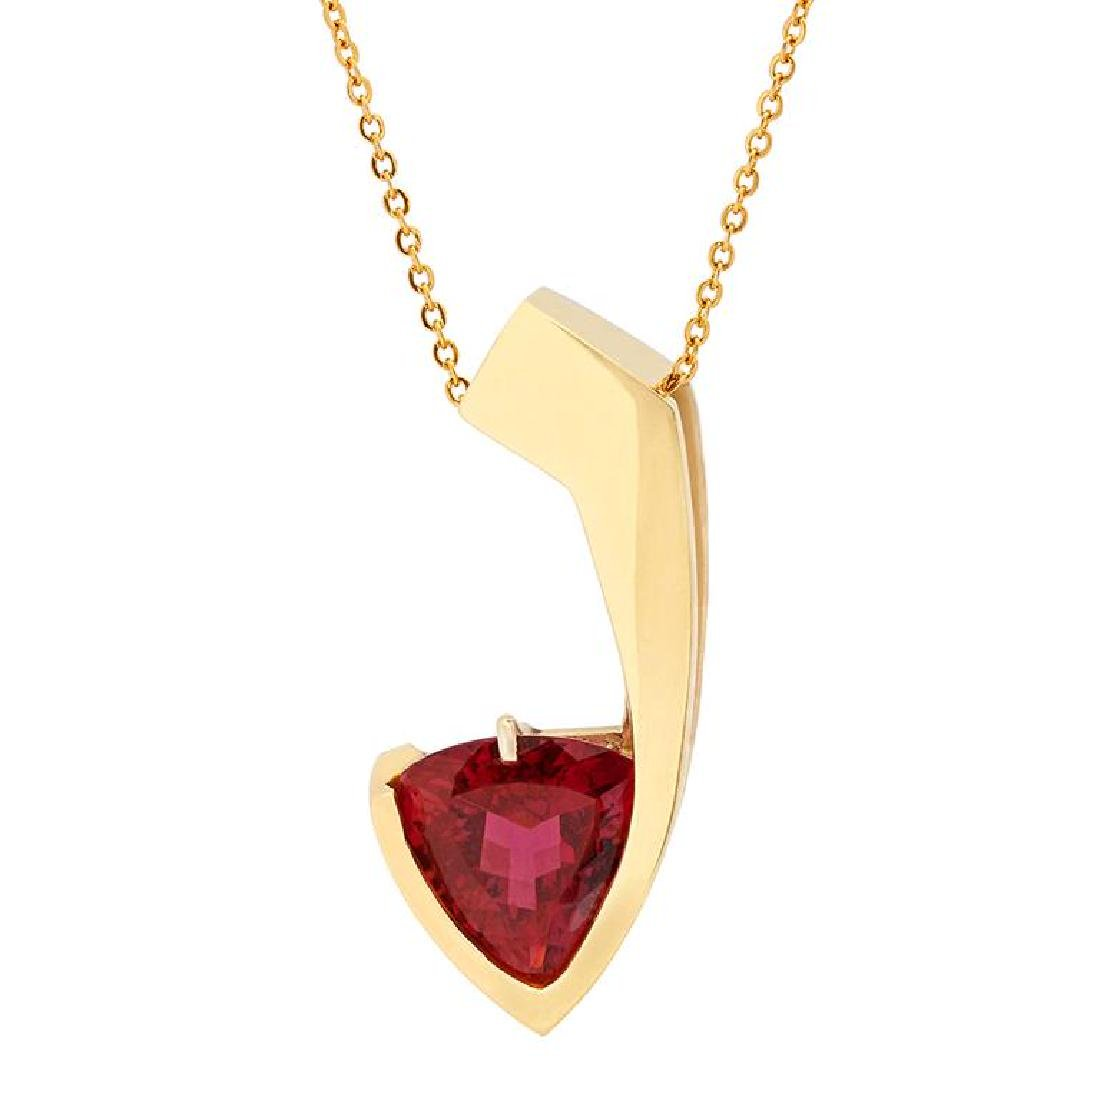 14k Yellow Gold 10.20ct Pink Tourmaline Pendant